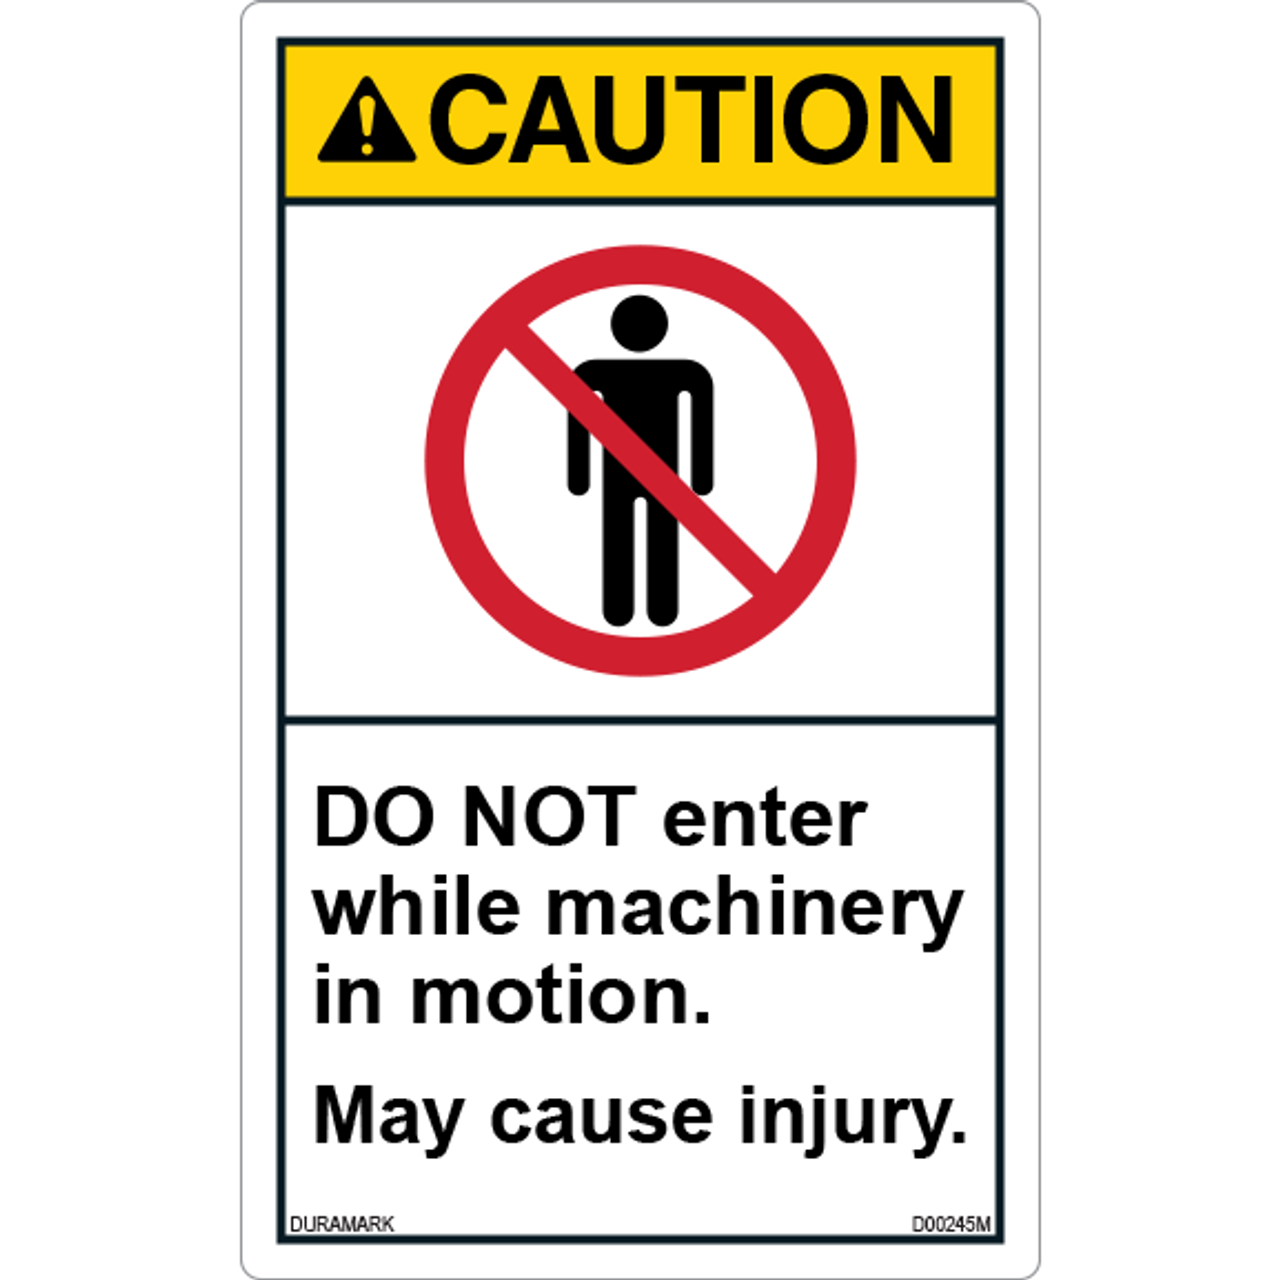 ANSI Safety Label - Caution - Do Not Enter While Machinery in Motion - Vertical